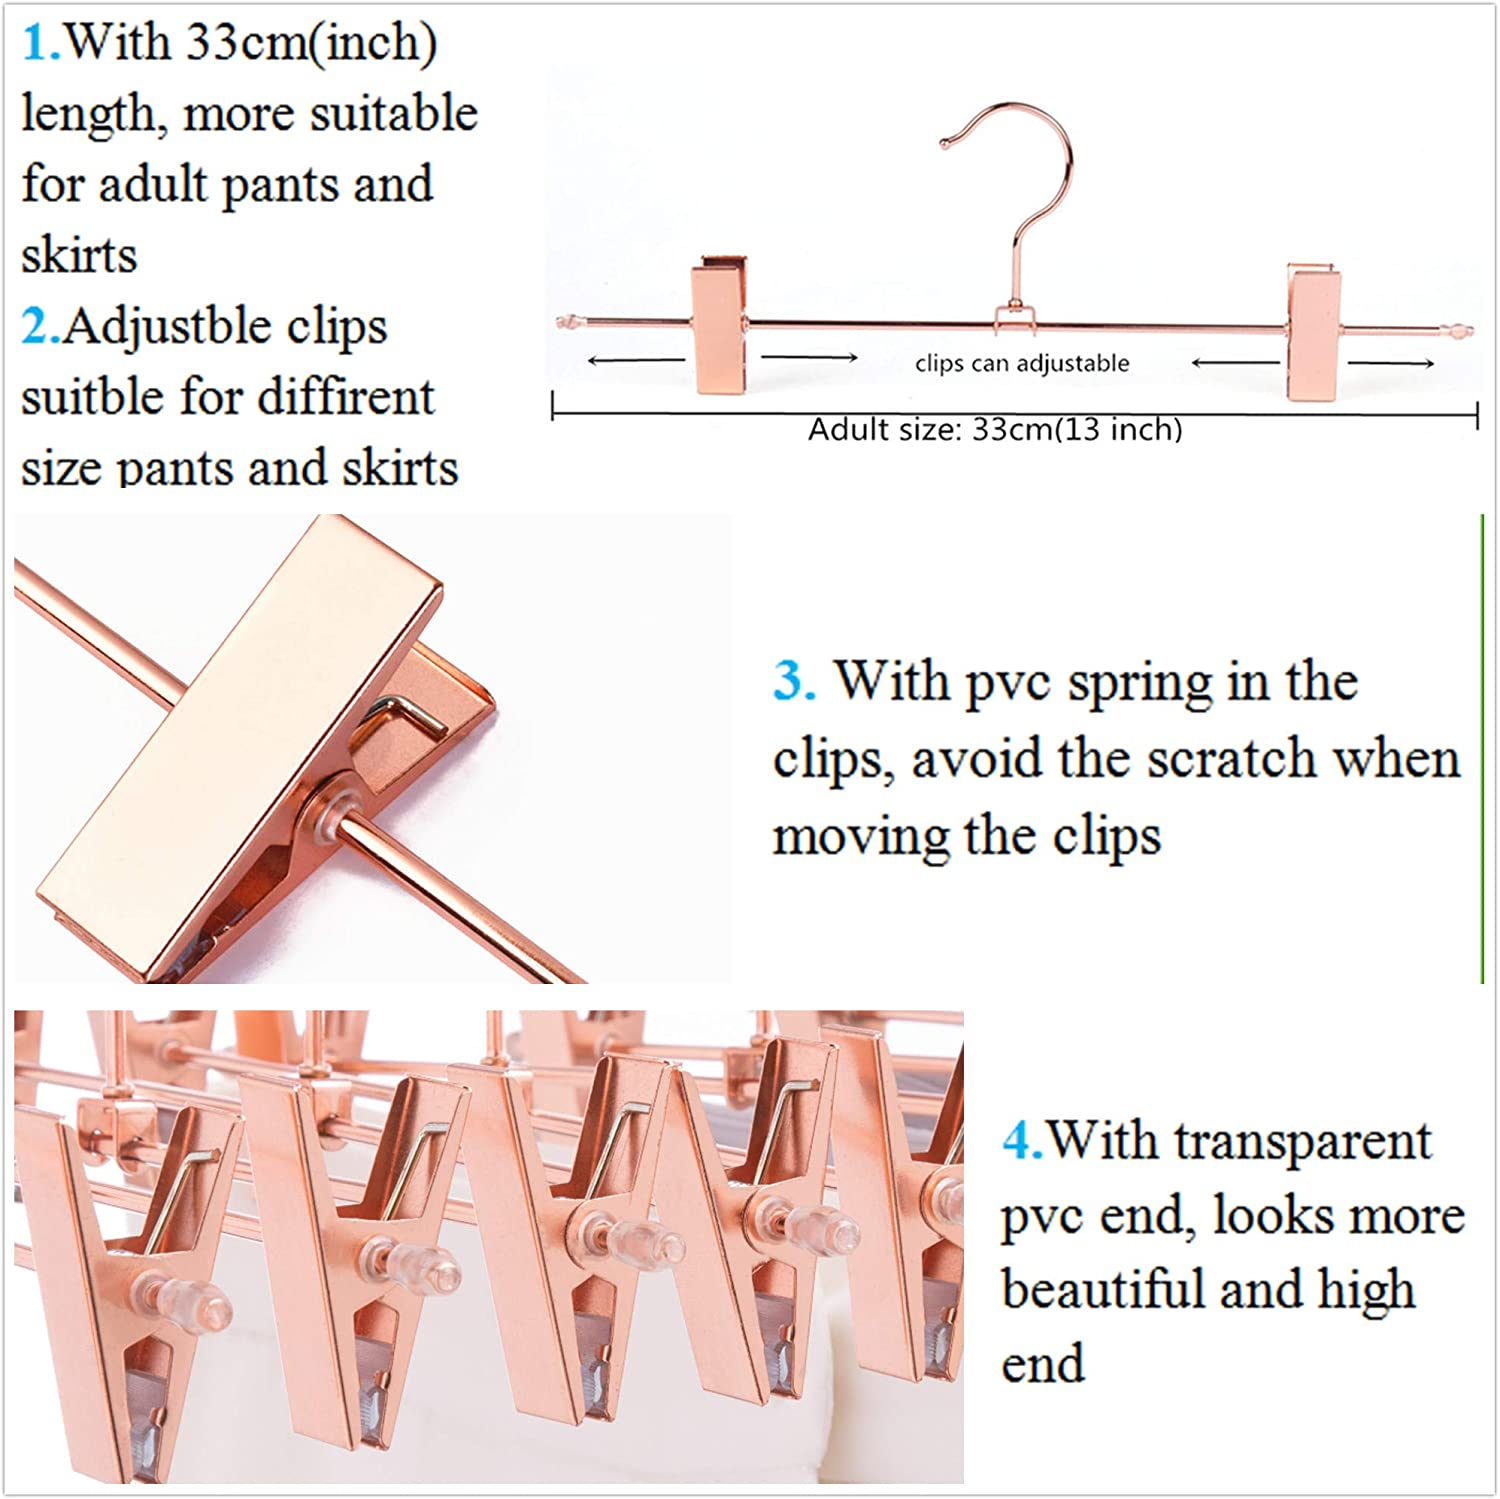 Pants Hanger Skirt Hanger With 360 Rotatable Hooks And Adjustable Clips Cocomaya 13 Inch Heavy Duty Rose Gold Metal Slack Hanger Pack Of 10 Clothing Closet Storage Clothes Hangers Convert between the units (cm → in) or see the conversion table. pants hanger skirt hanger with 360